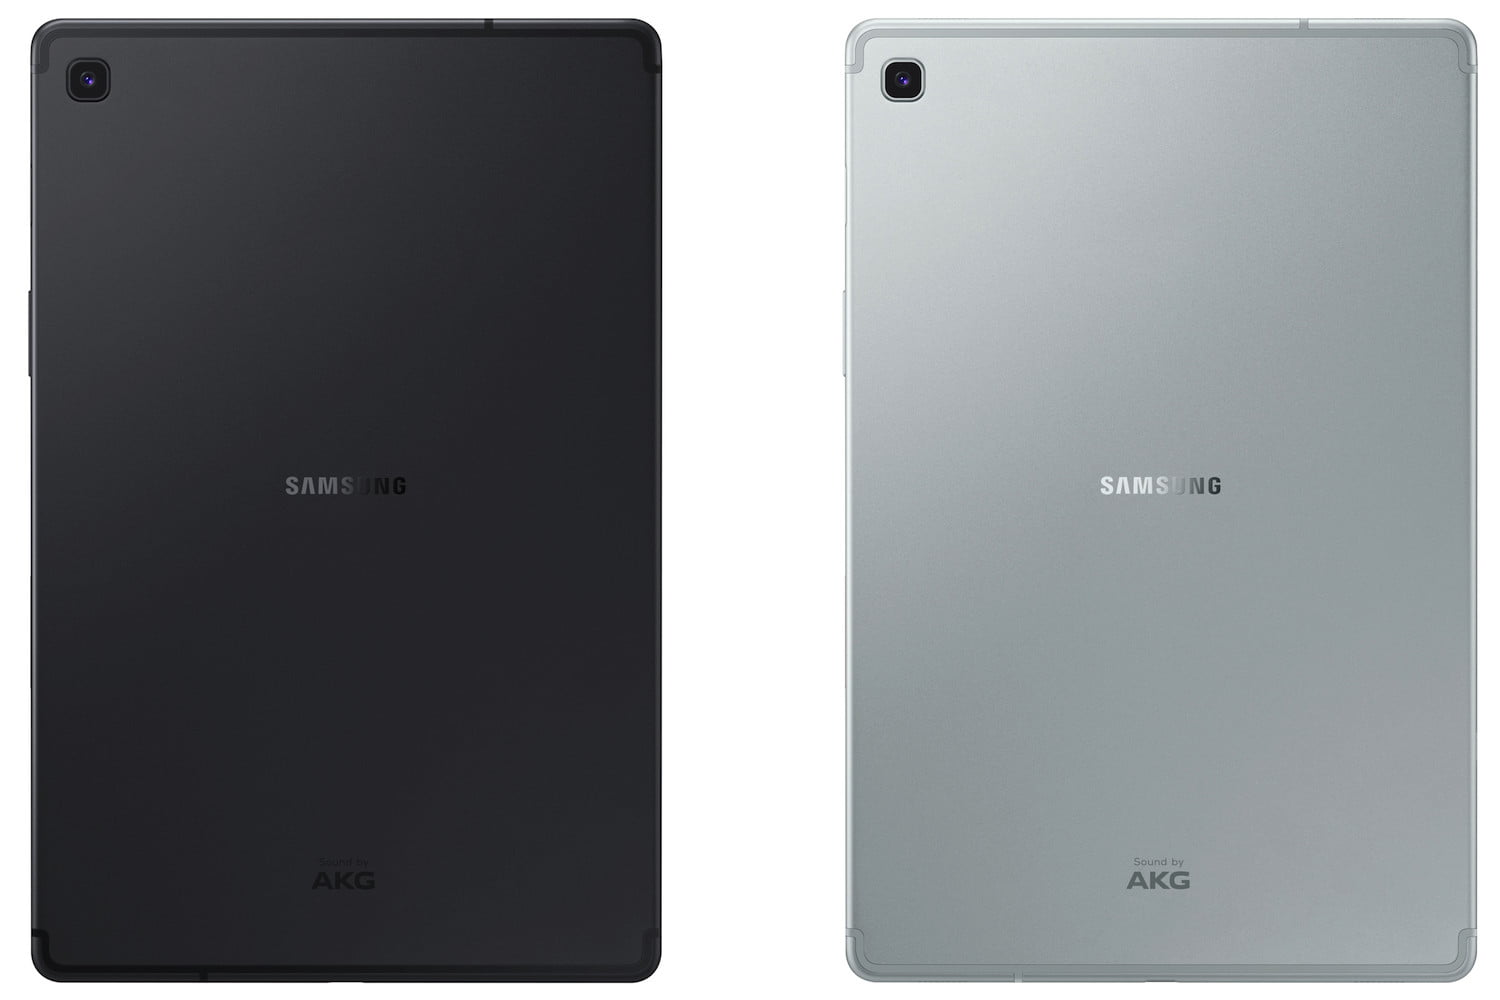 New Samsung Galaxy Tab S5e Made To Tempt You Away From Old